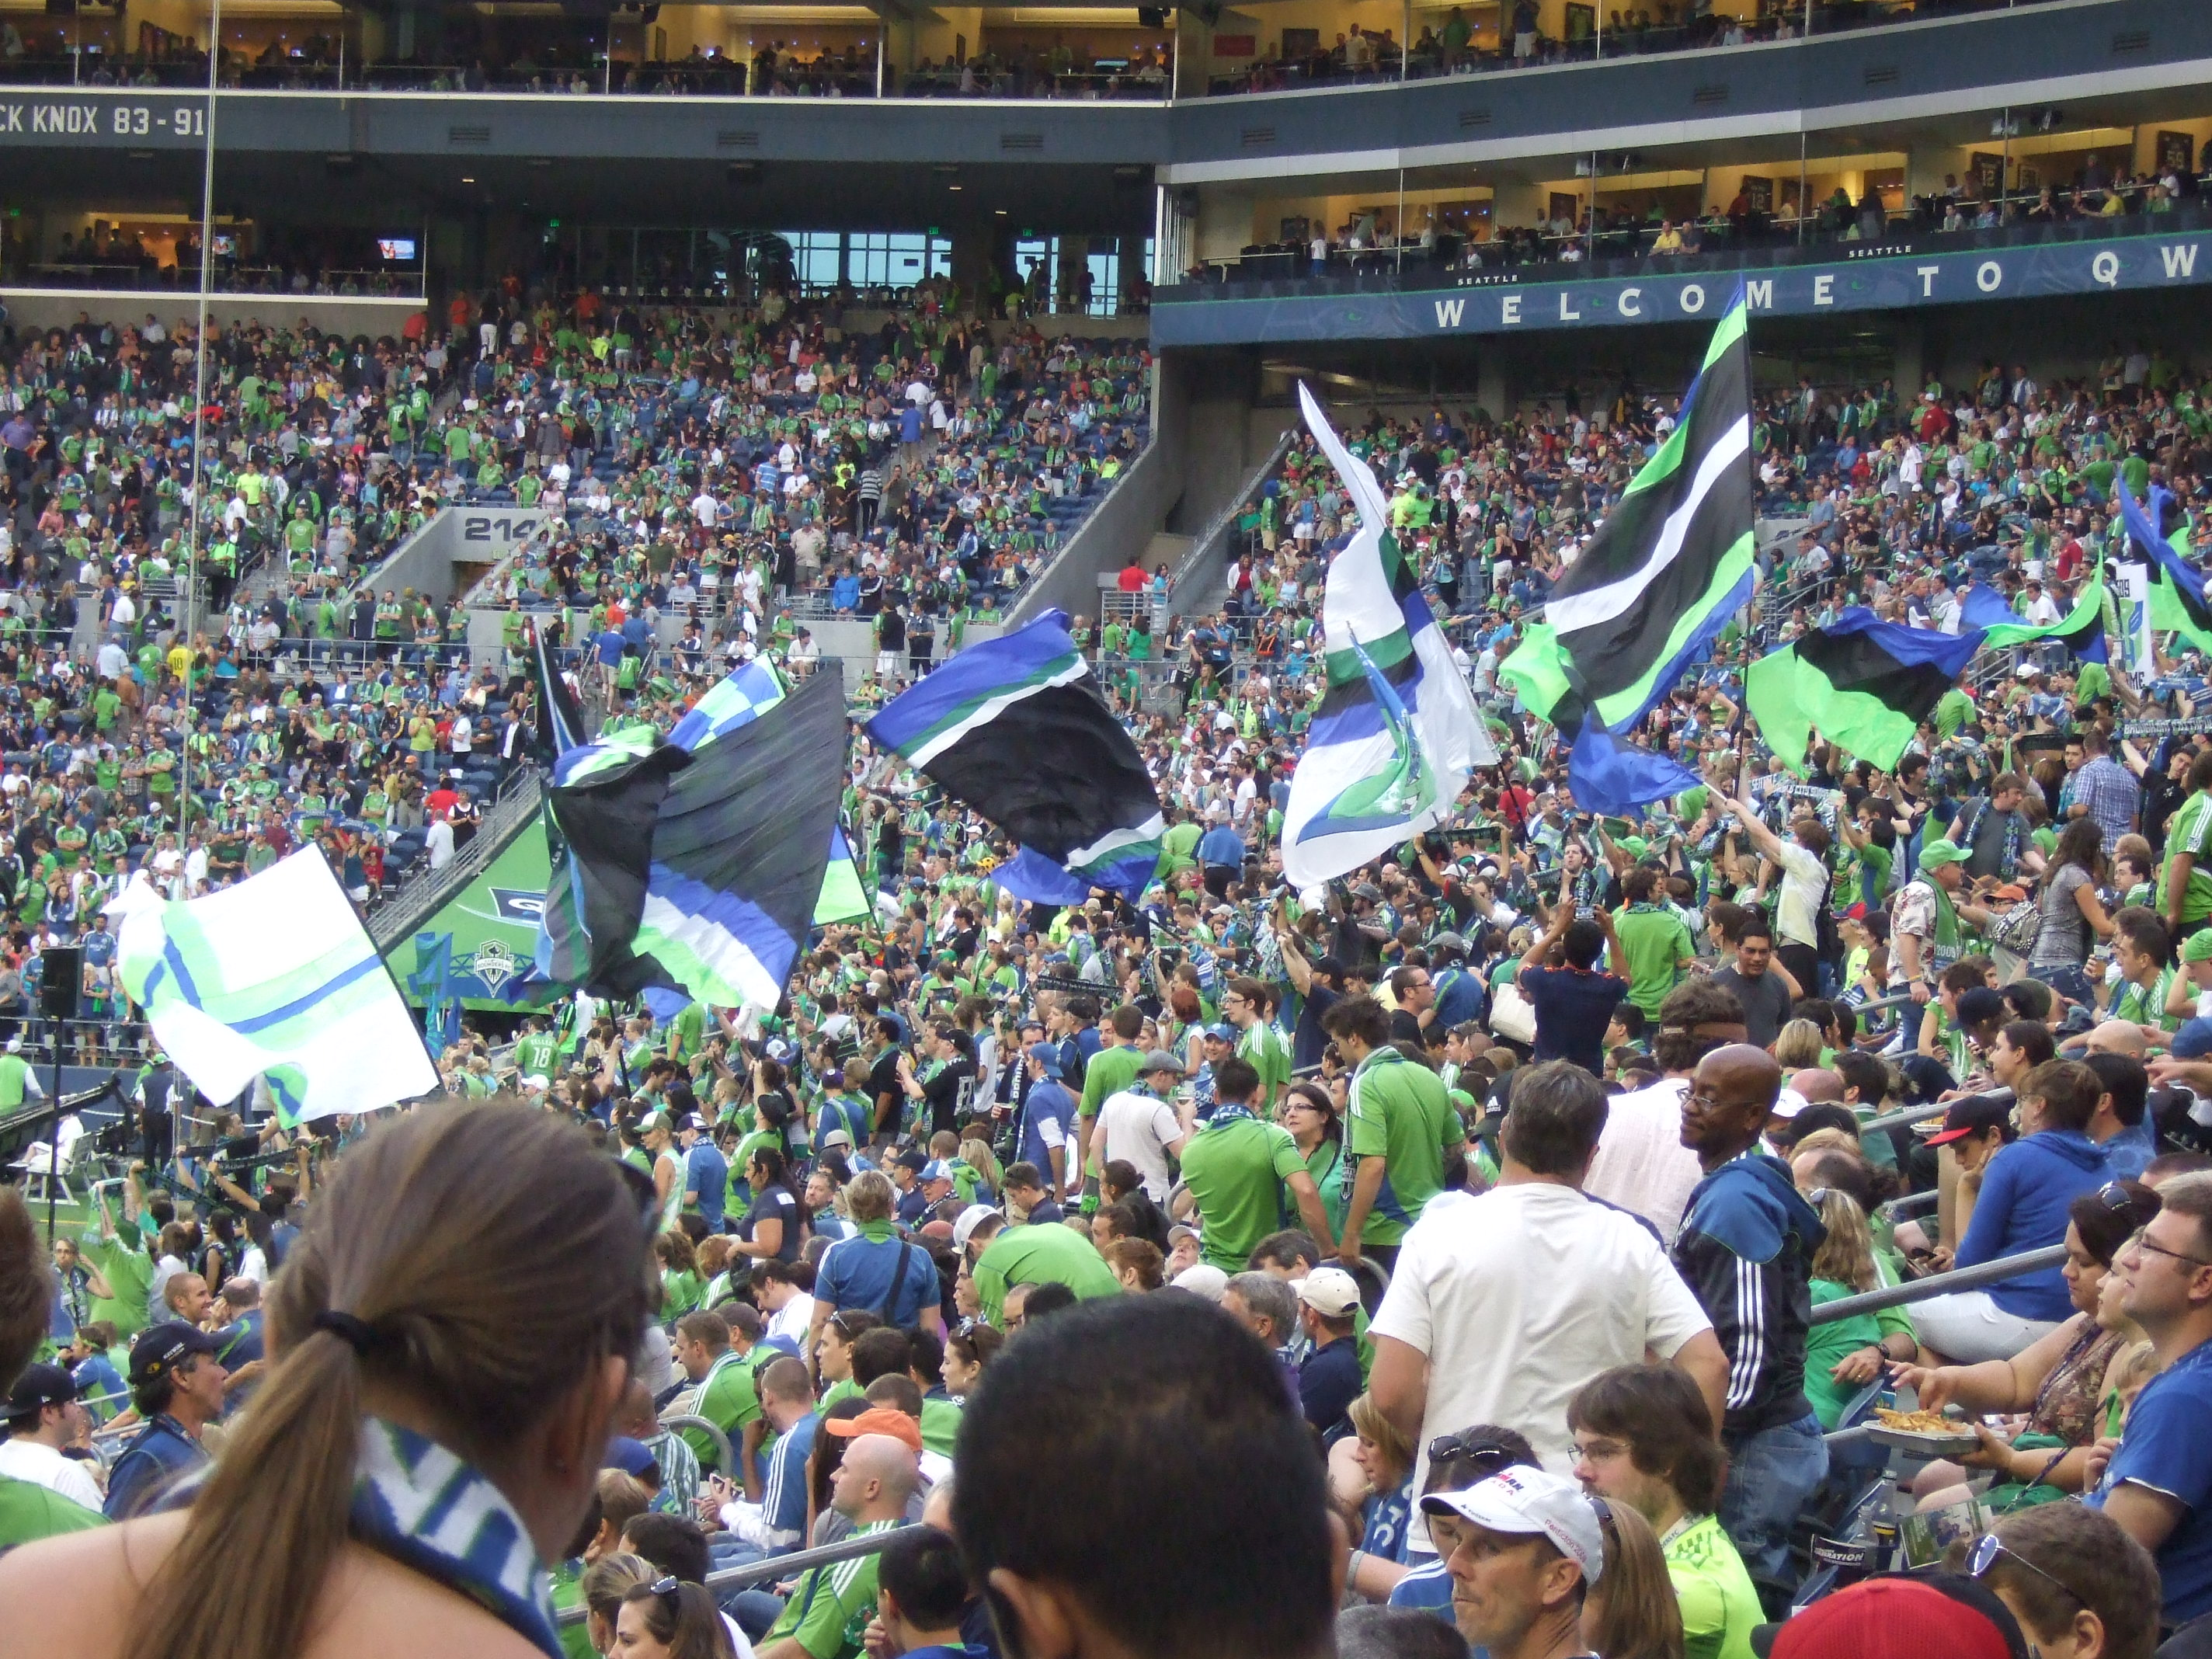 DSCF6569 Flags at the Sounders gam